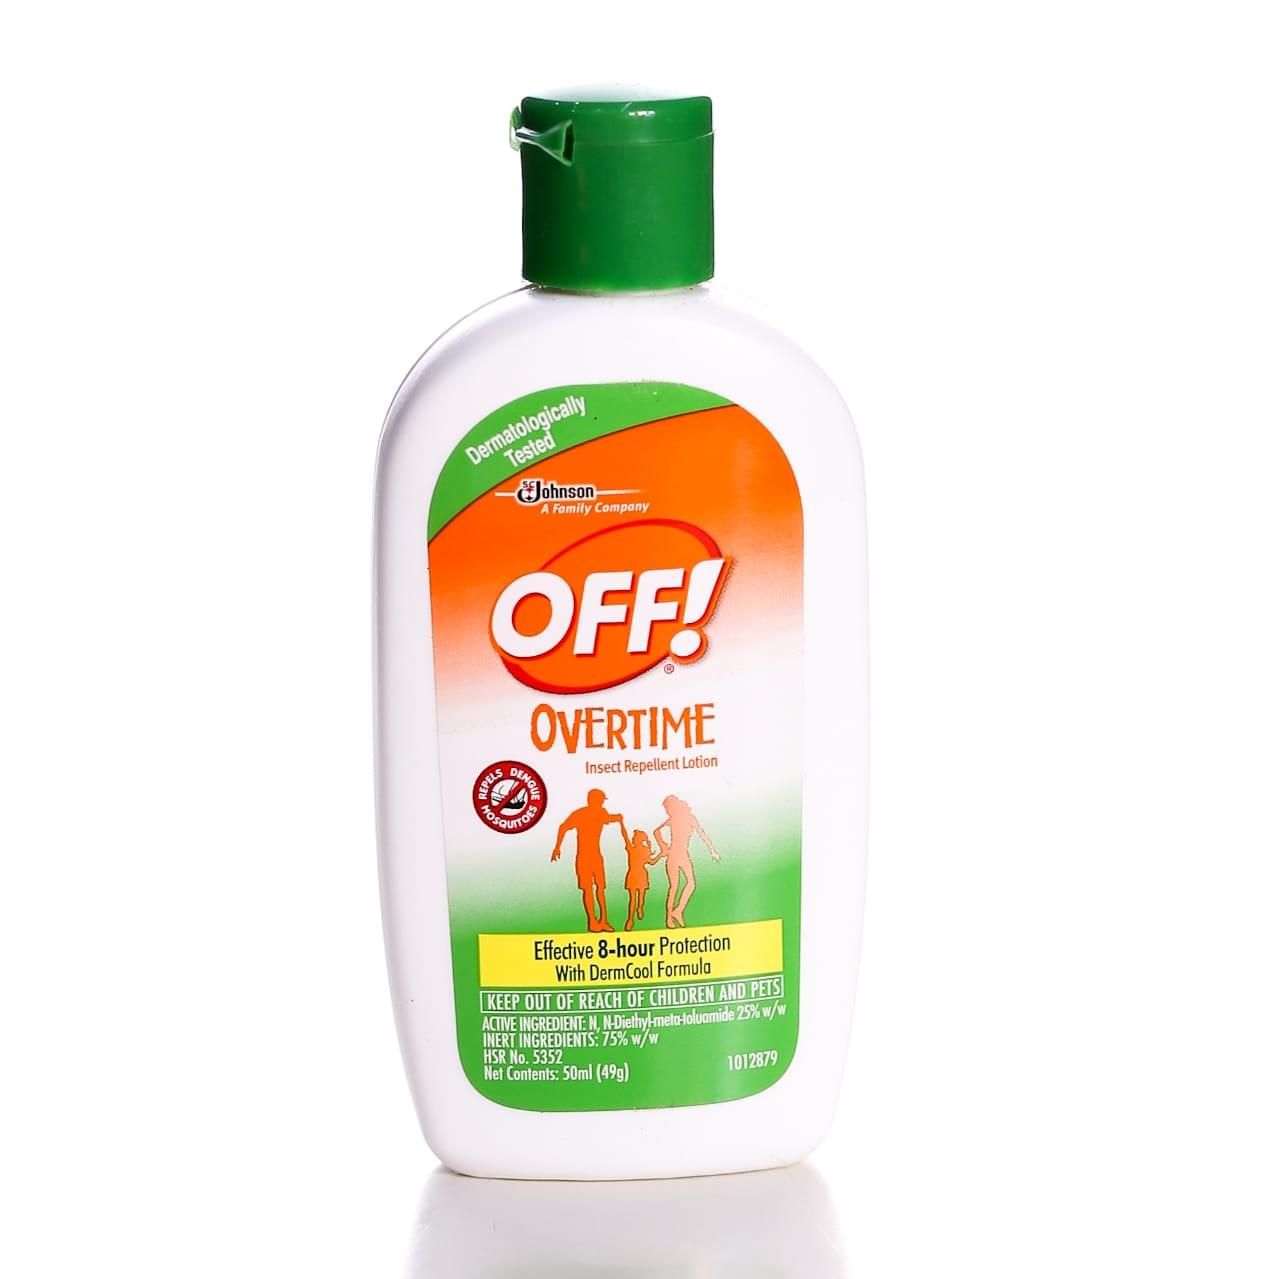 OFF Overtime Insect Repellent Lotion 50ml